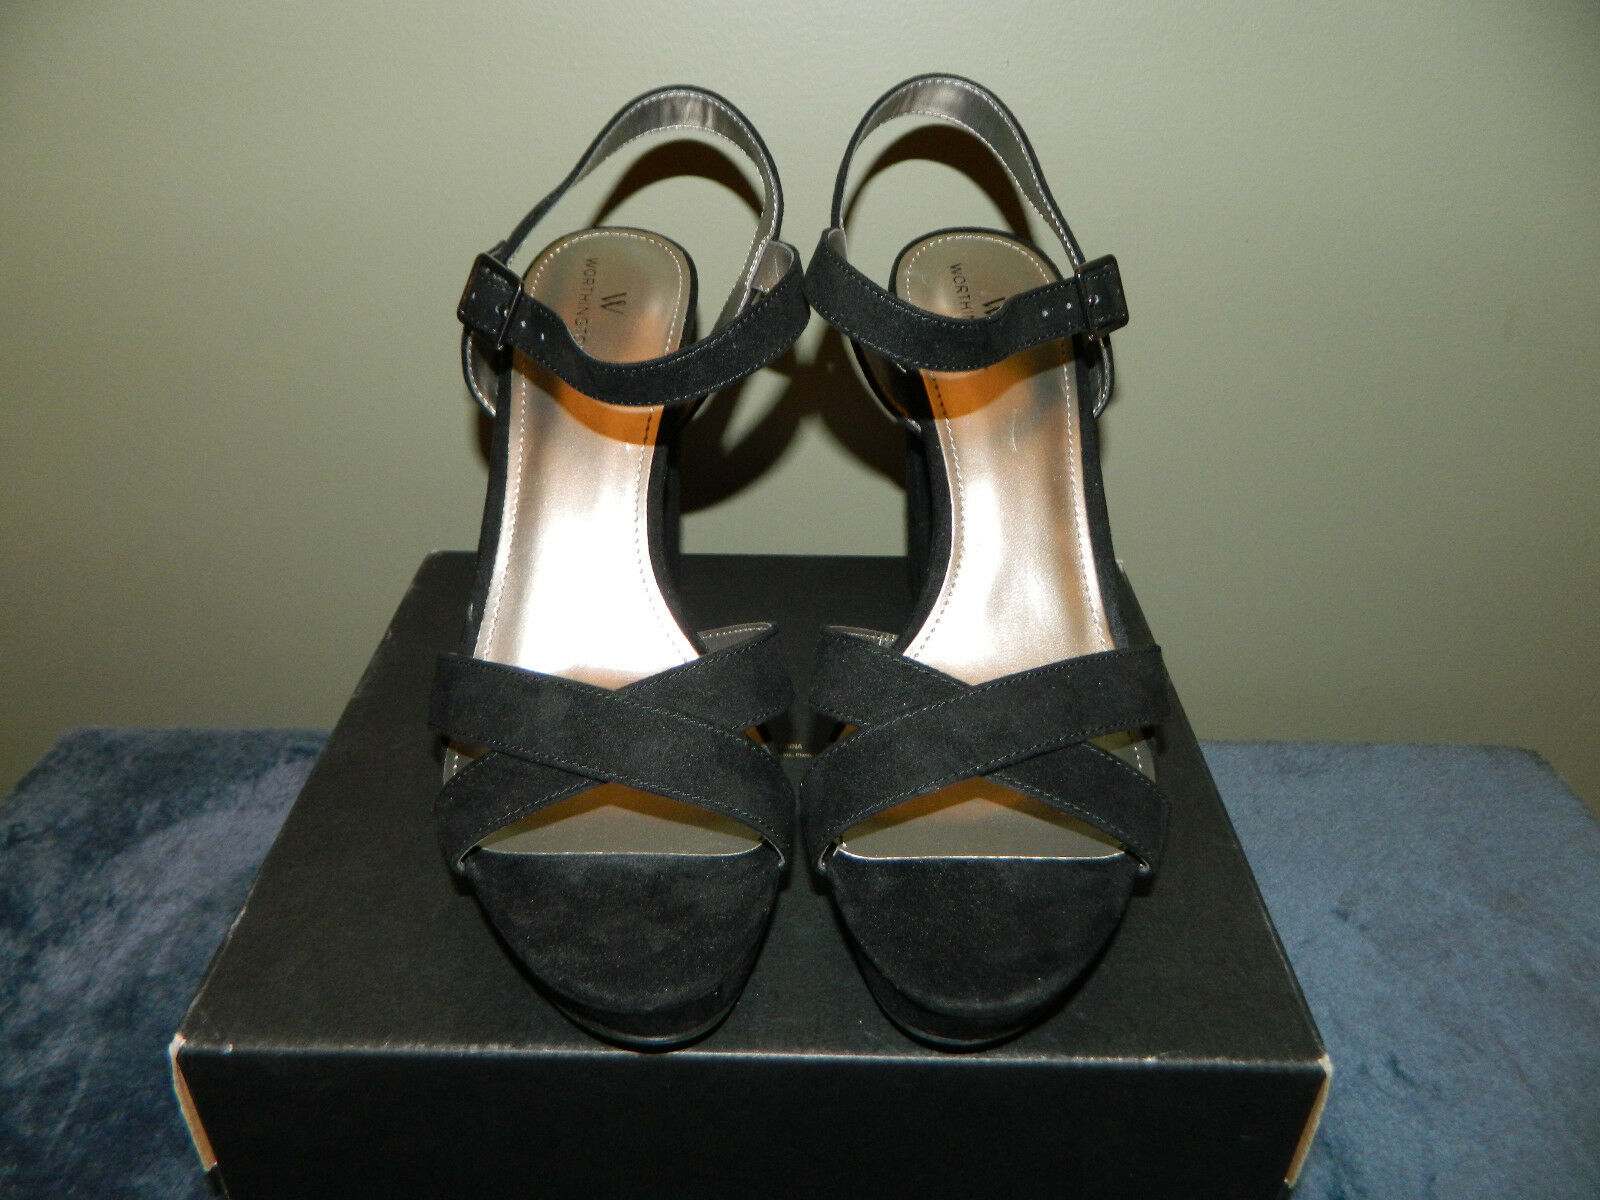 Worthington WOR SABLE Black Womens Pumps SZ 8.5M Brand New